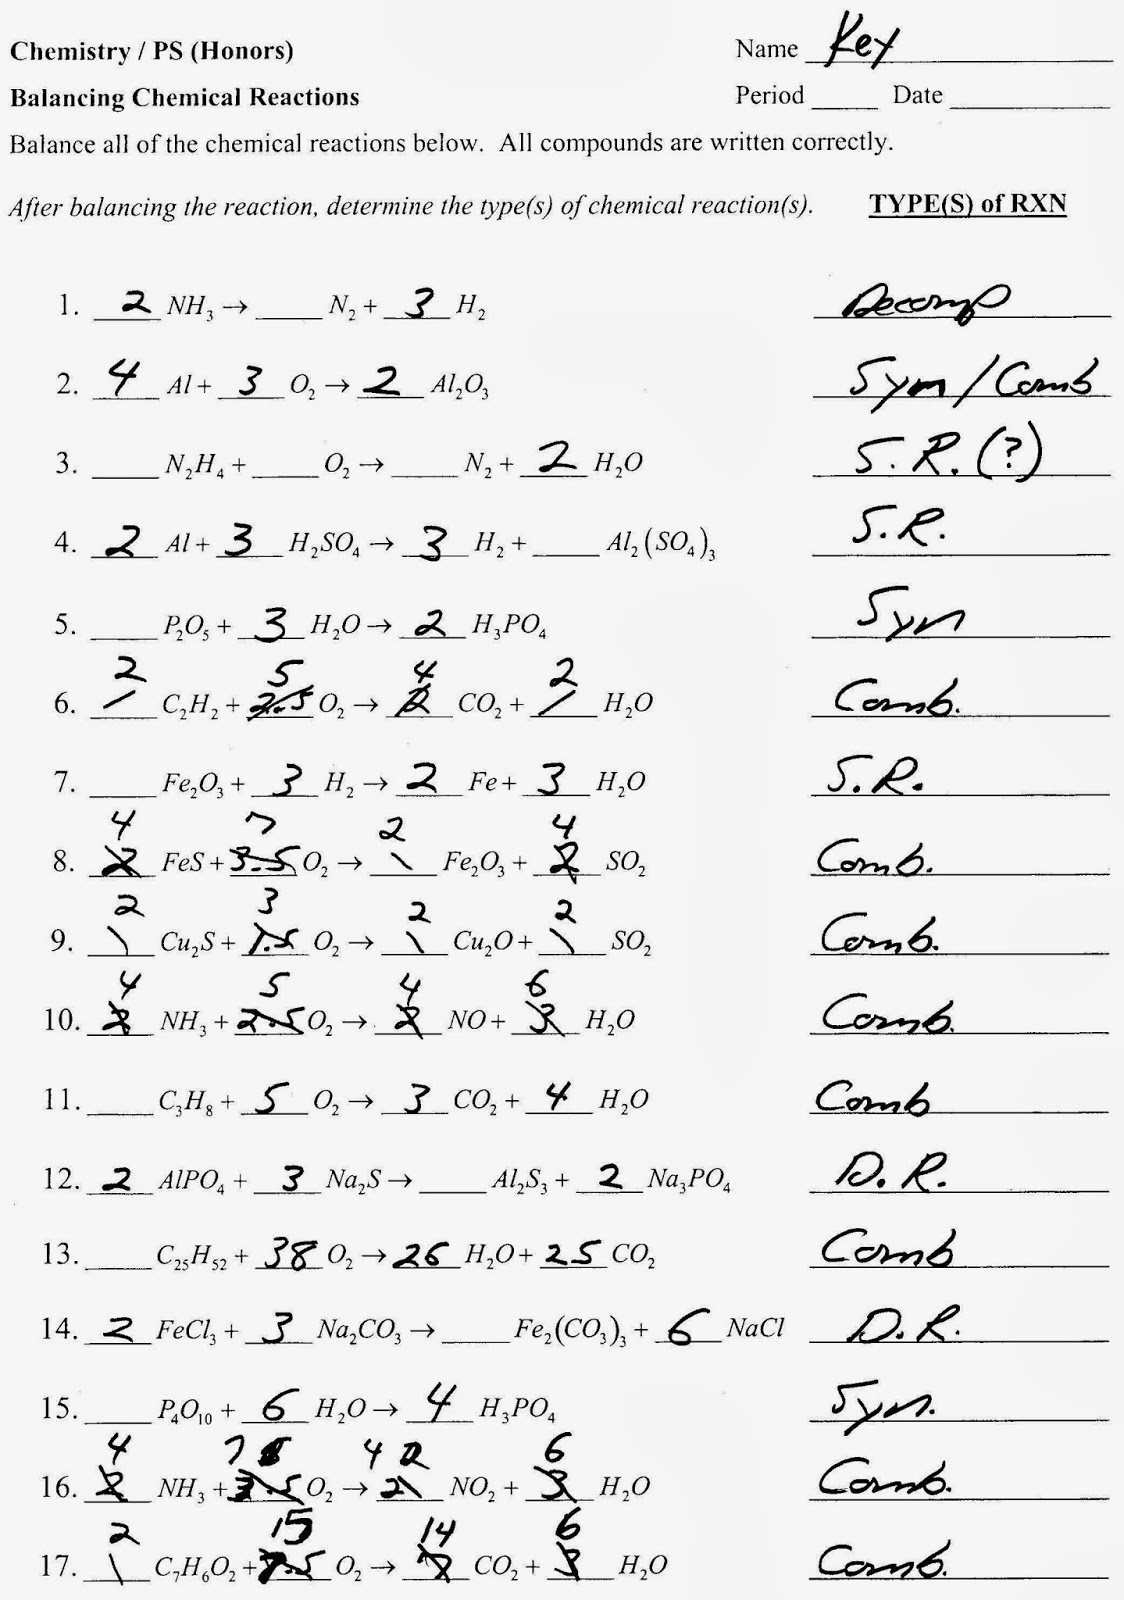 Aldiablosus  Personable Balancing Chemical Equations Worksheets Balancing Chemical  With Lovely Balancing Chemical Equations Worksheet Answer Key On Chemistry Double With Amazing Fun Verb Worksheets Also Worksheets For The Letter B In Addition Solving For Variables Worksheets And Texas Geography Worksheets As Well As Worksheet On Acids And Bases Additionally Grammar Worksheets Free Printable From Letstalkhiphopus With Aldiablosus  Lovely Balancing Chemical Equations Worksheets Balancing Chemical  With Amazing Balancing Chemical Equations Worksheet Answer Key On Chemistry Double And Personable Fun Verb Worksheets Also Worksheets For The Letter B In Addition Solving For Variables Worksheets From Letstalkhiphopus